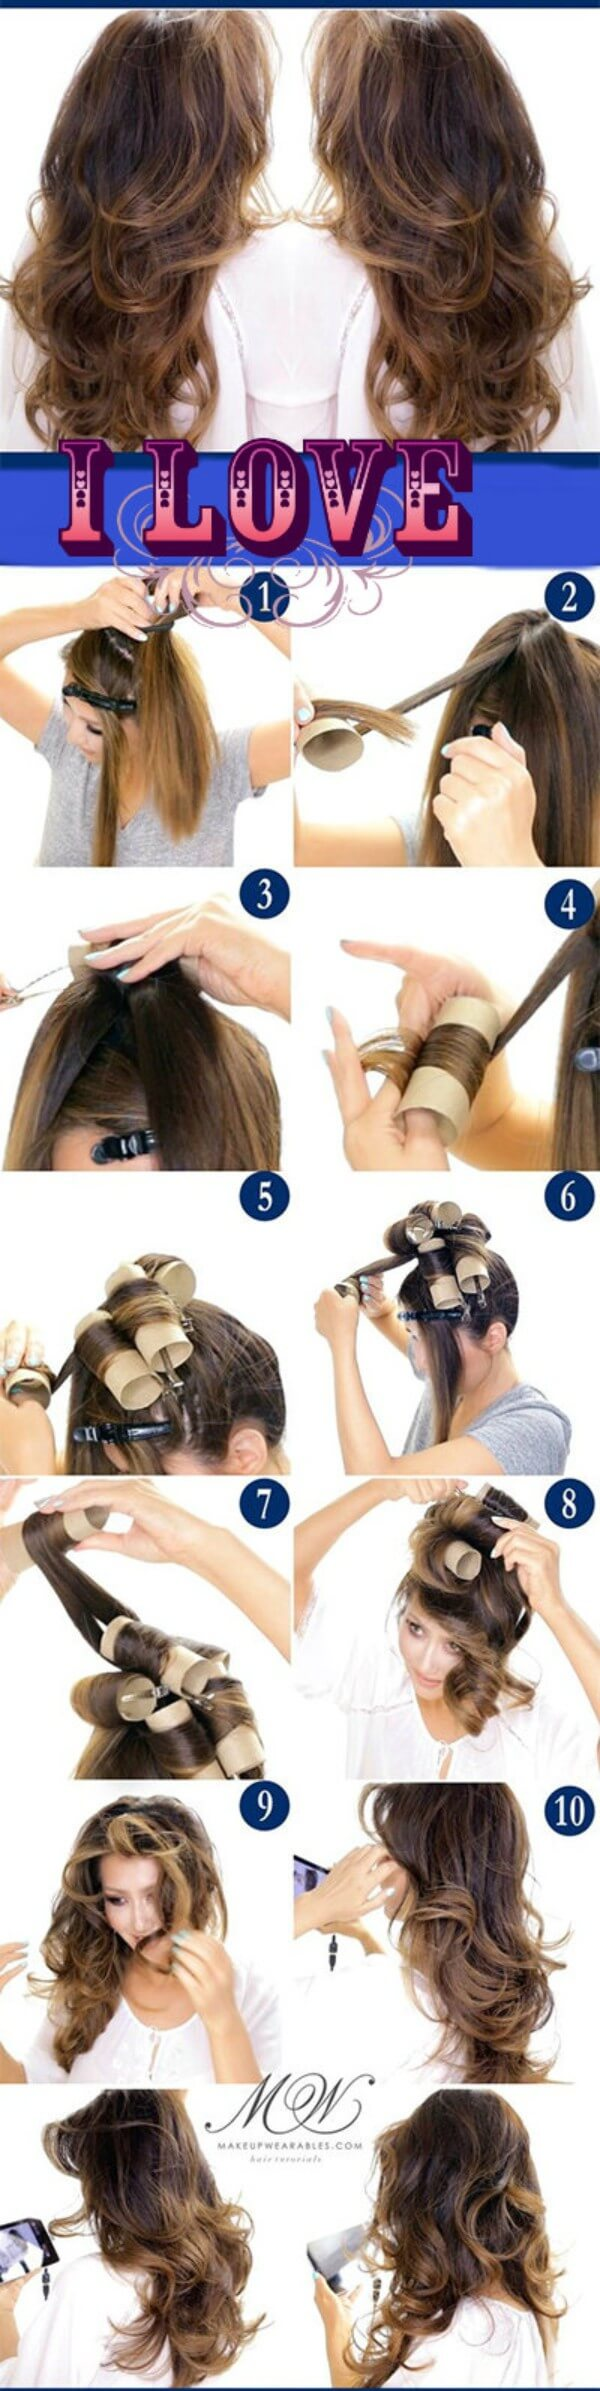 Curl your hair without heat tips use cold rollers and get natural curls